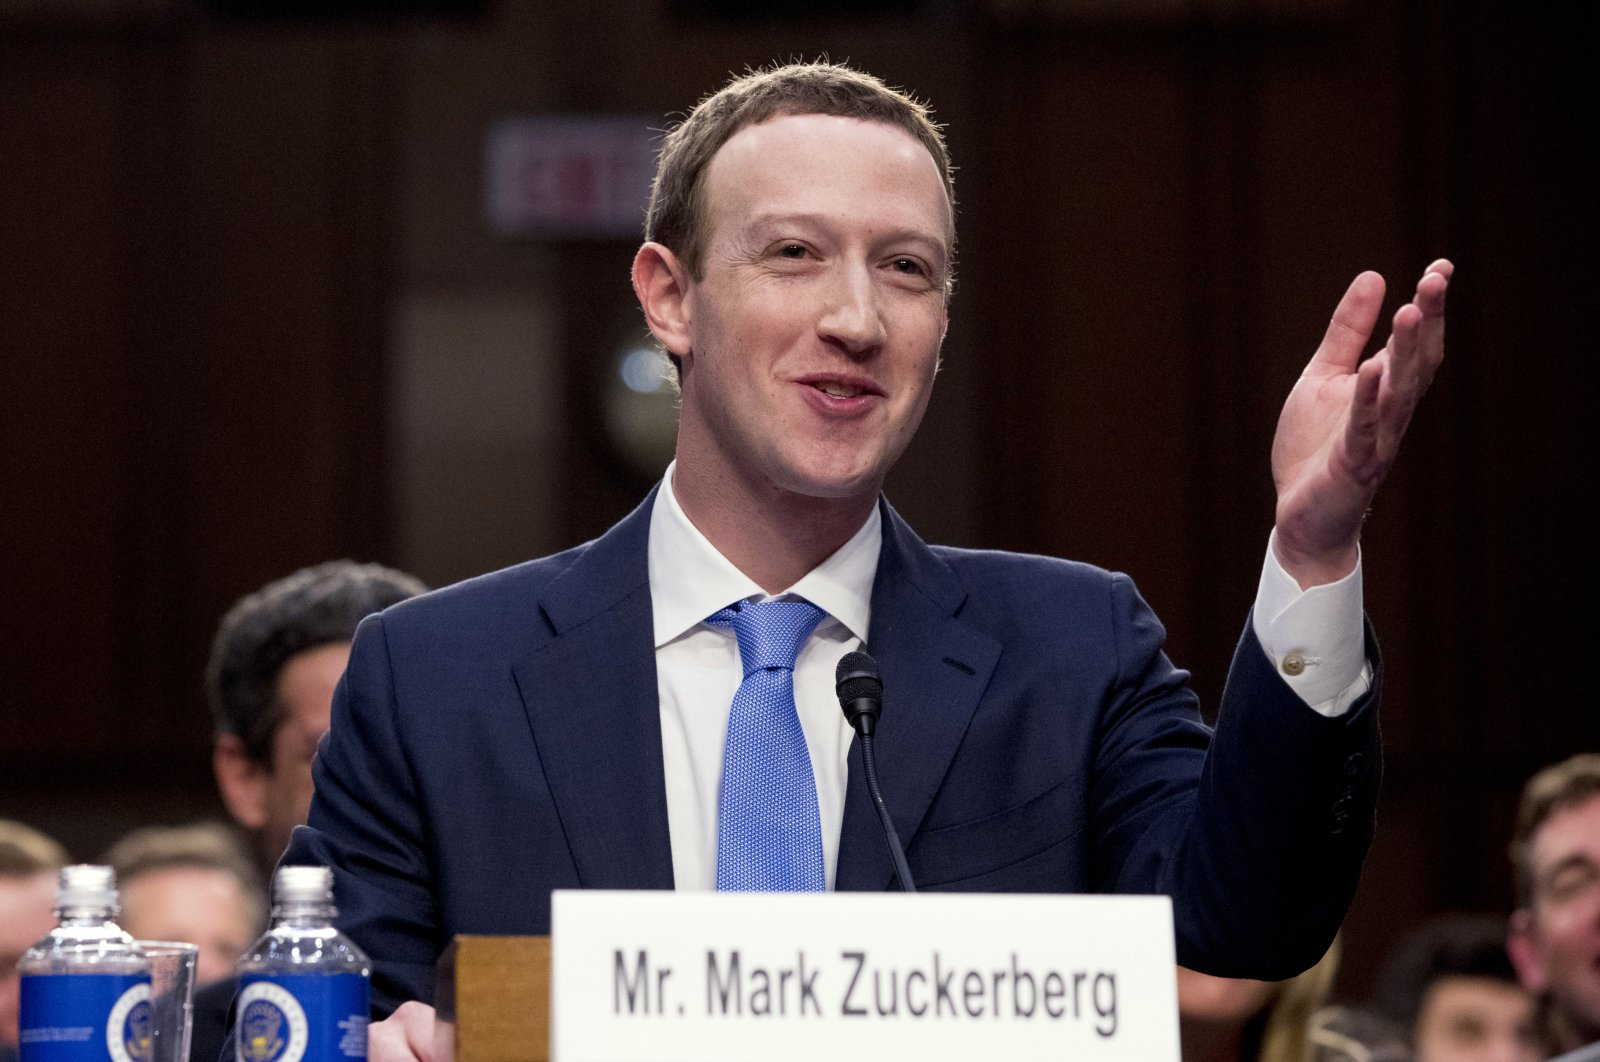 Facebook CEO Mark Zuckerberg testifies before a joint hearing of the commerce and judiciary committees on Capitol Hill in Washington, D.C., U.S., April 10, 2018. (AP Photo)